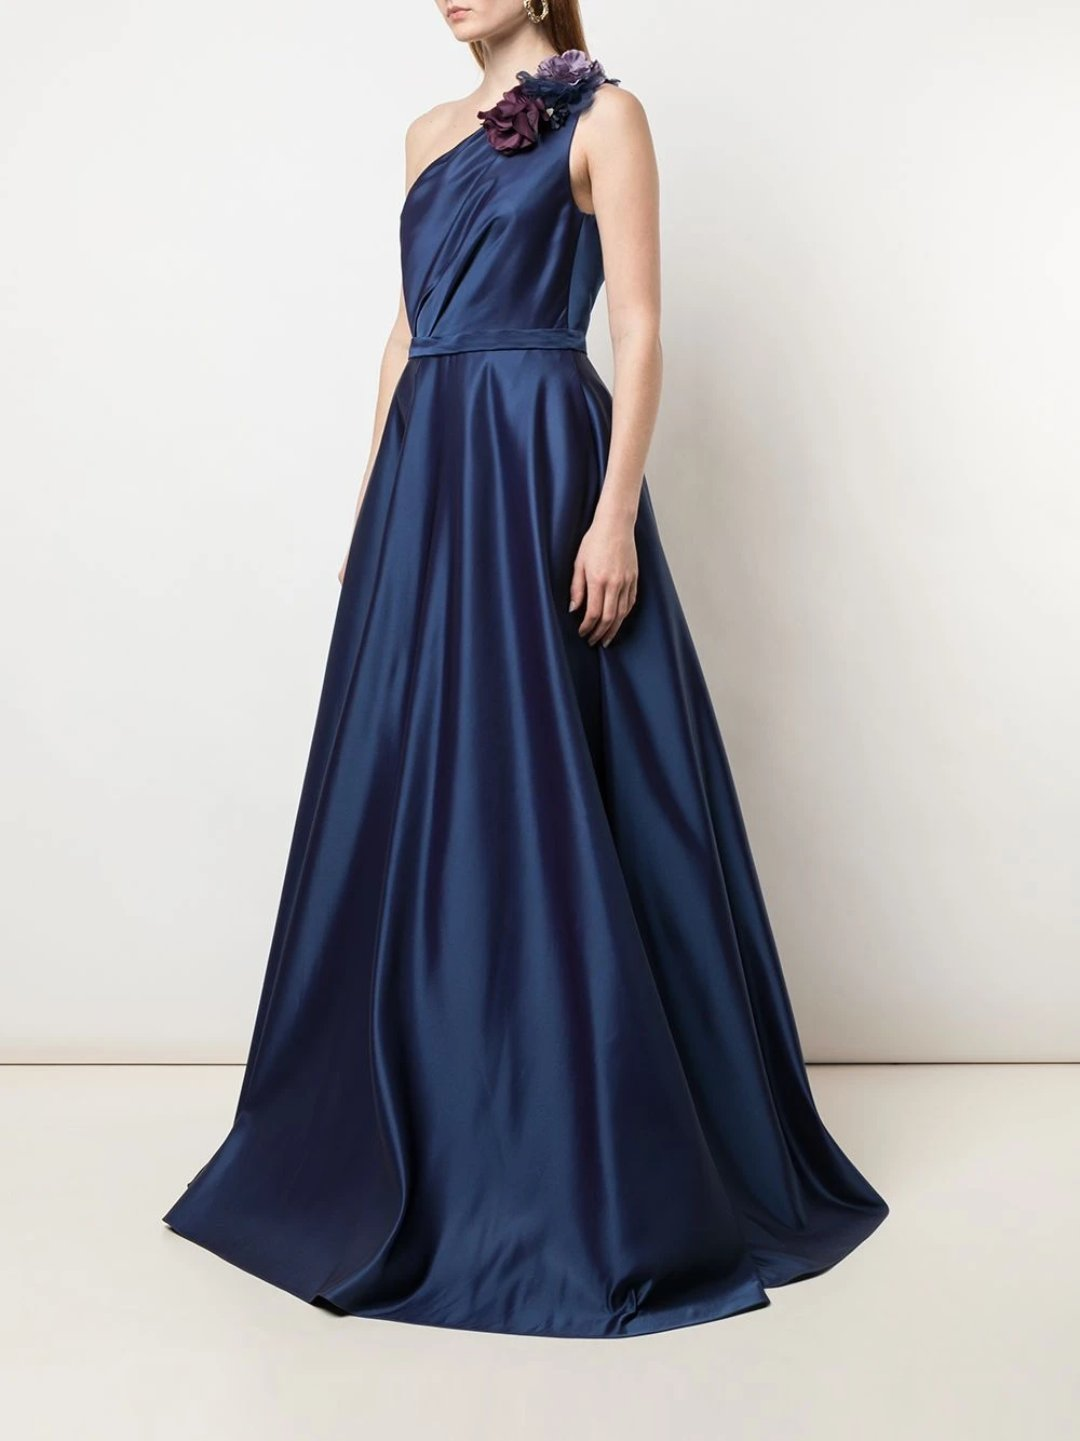 Duchess Satin Ballgown